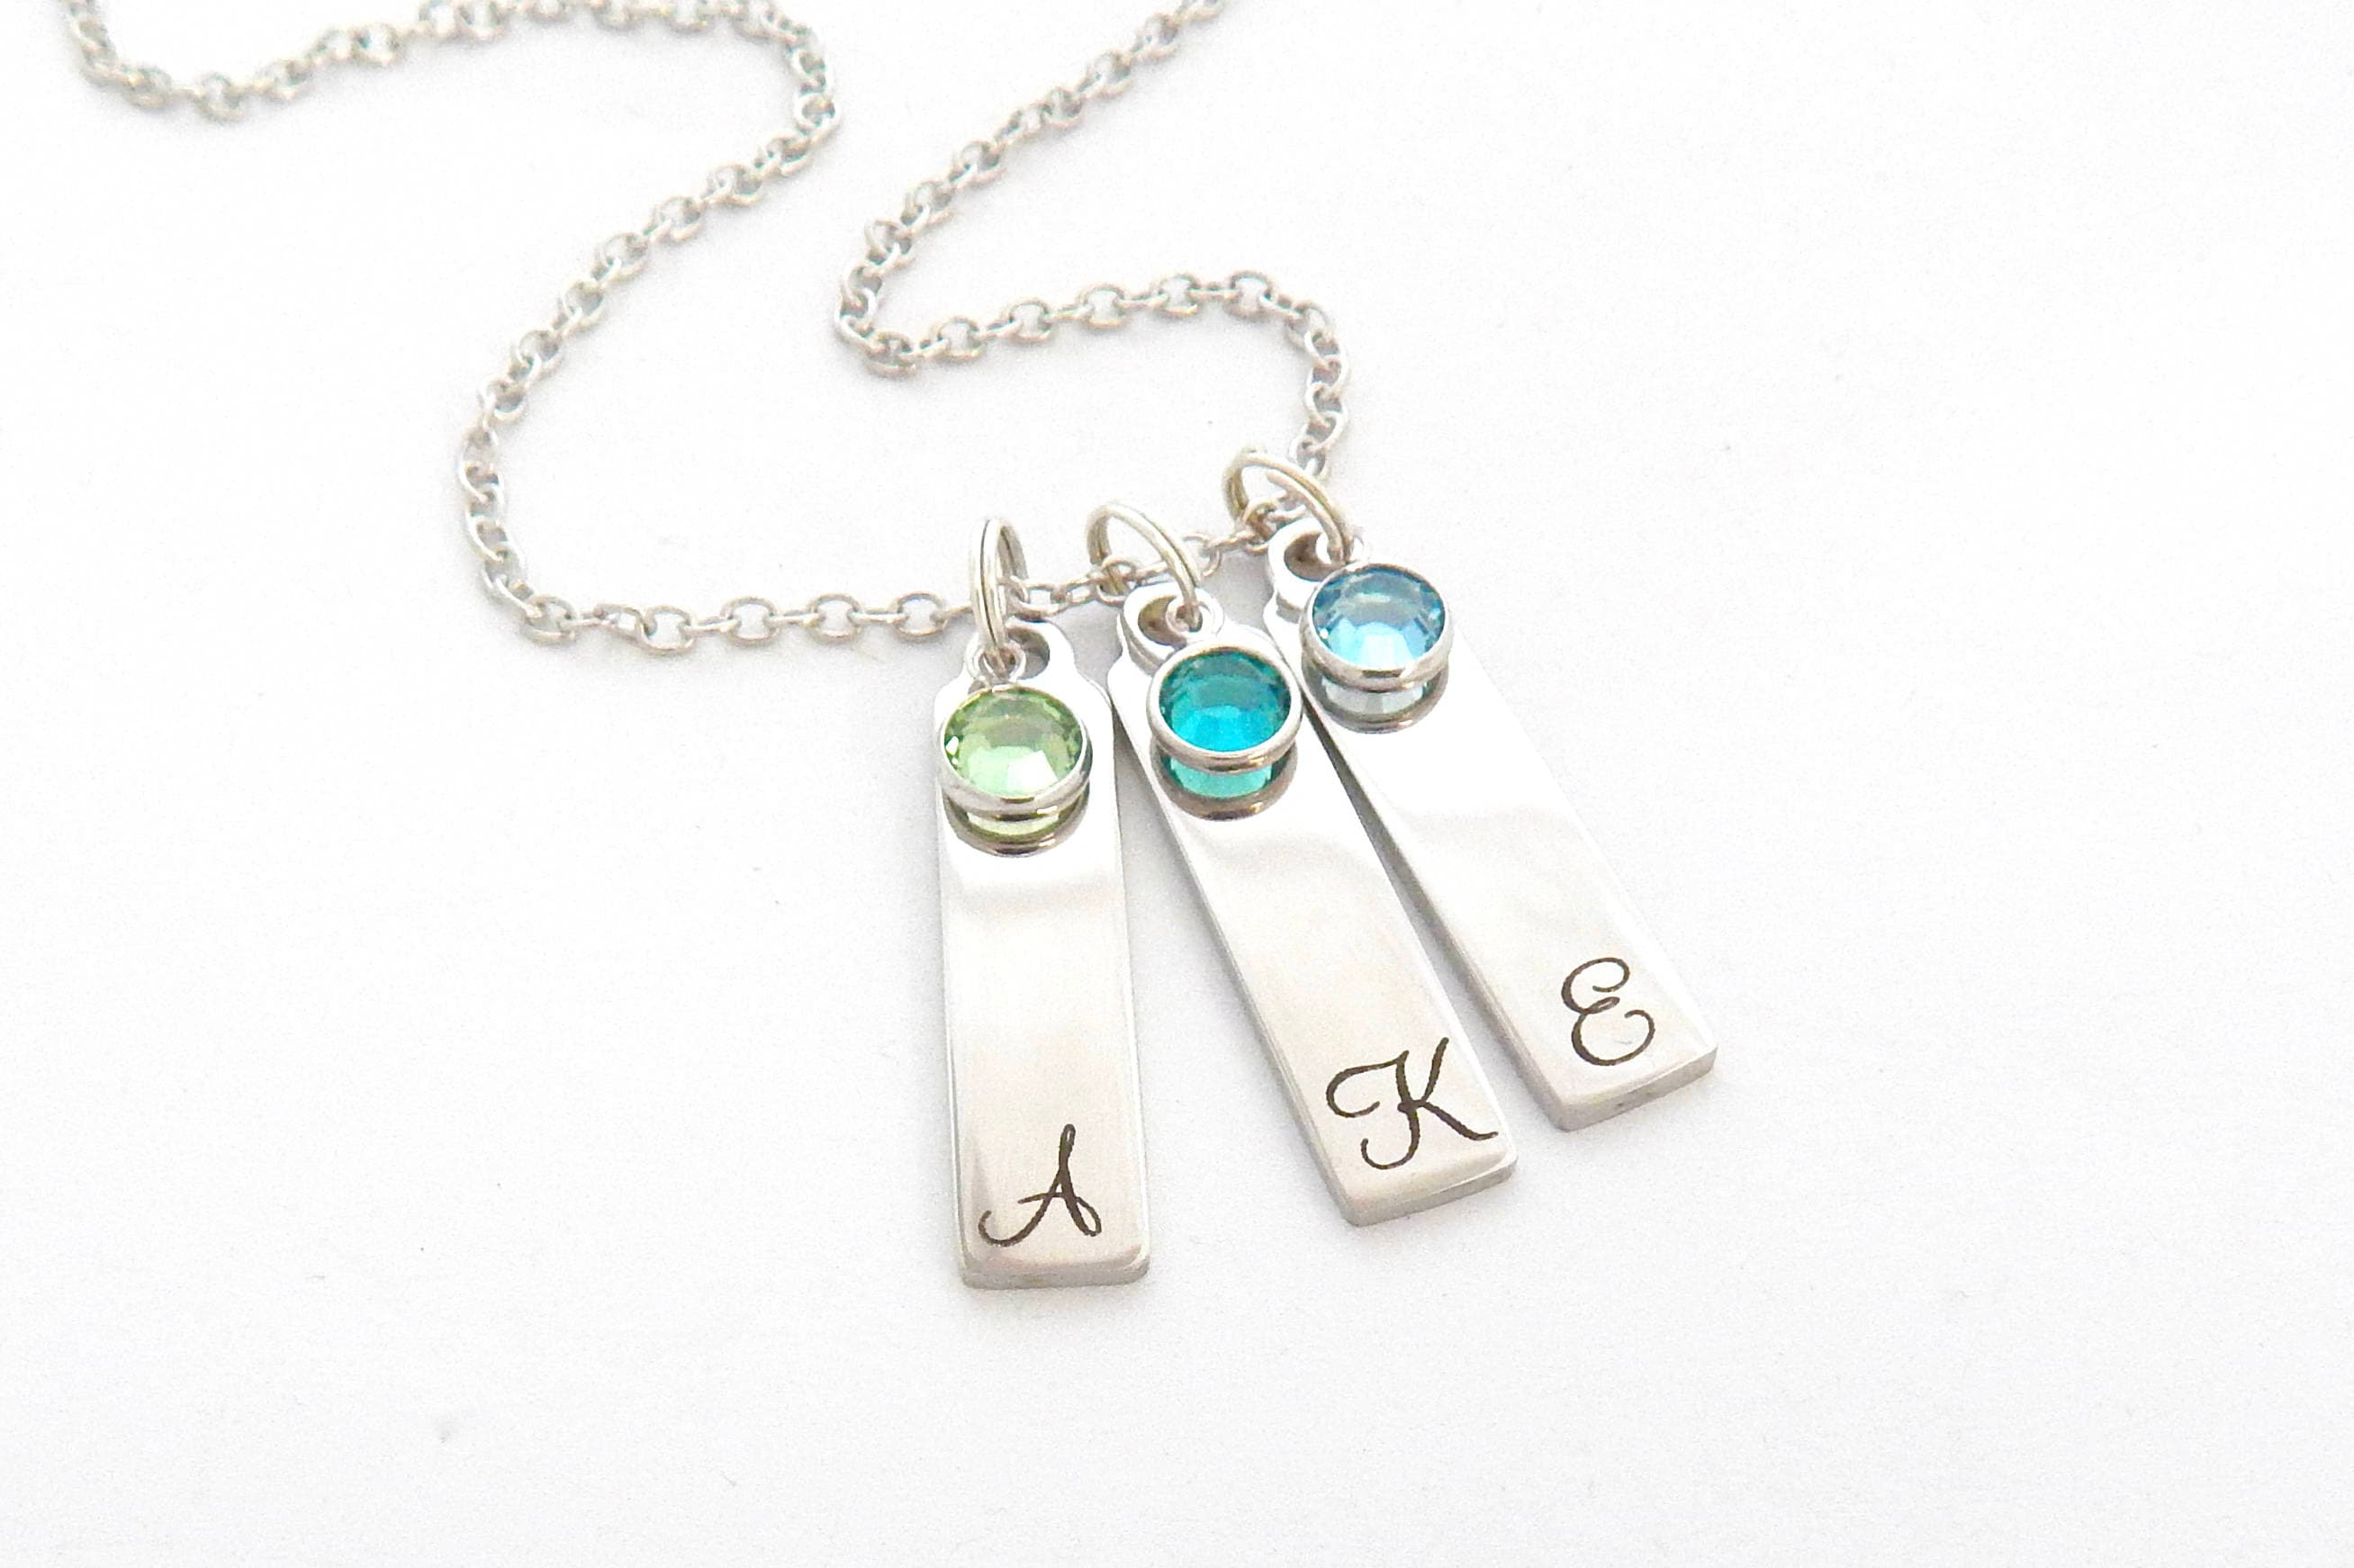 tag with grandmothers grandkid for stamped one initial grandchild s silver birthstone charm grandmother necklace